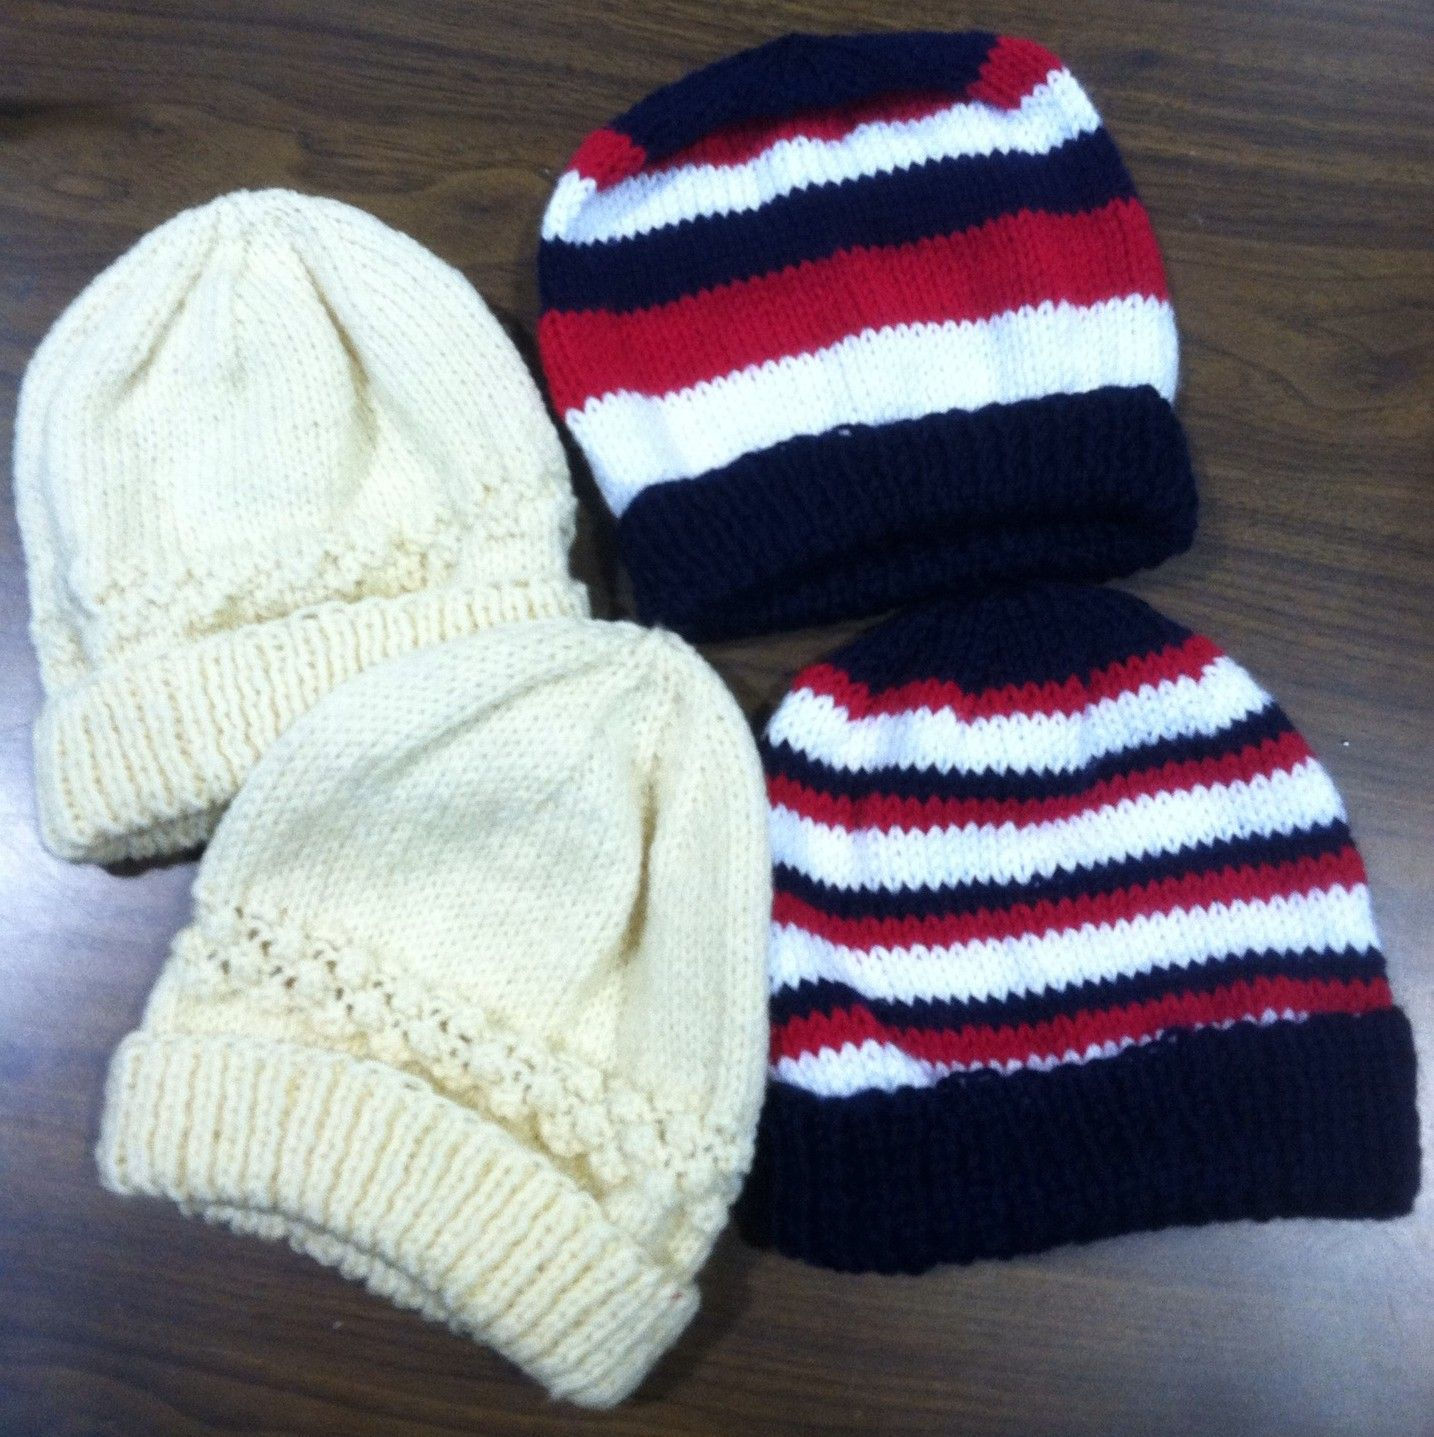 006f0875364 Hand knitted hats are great for Operation Christmas Child shoe boxes ...